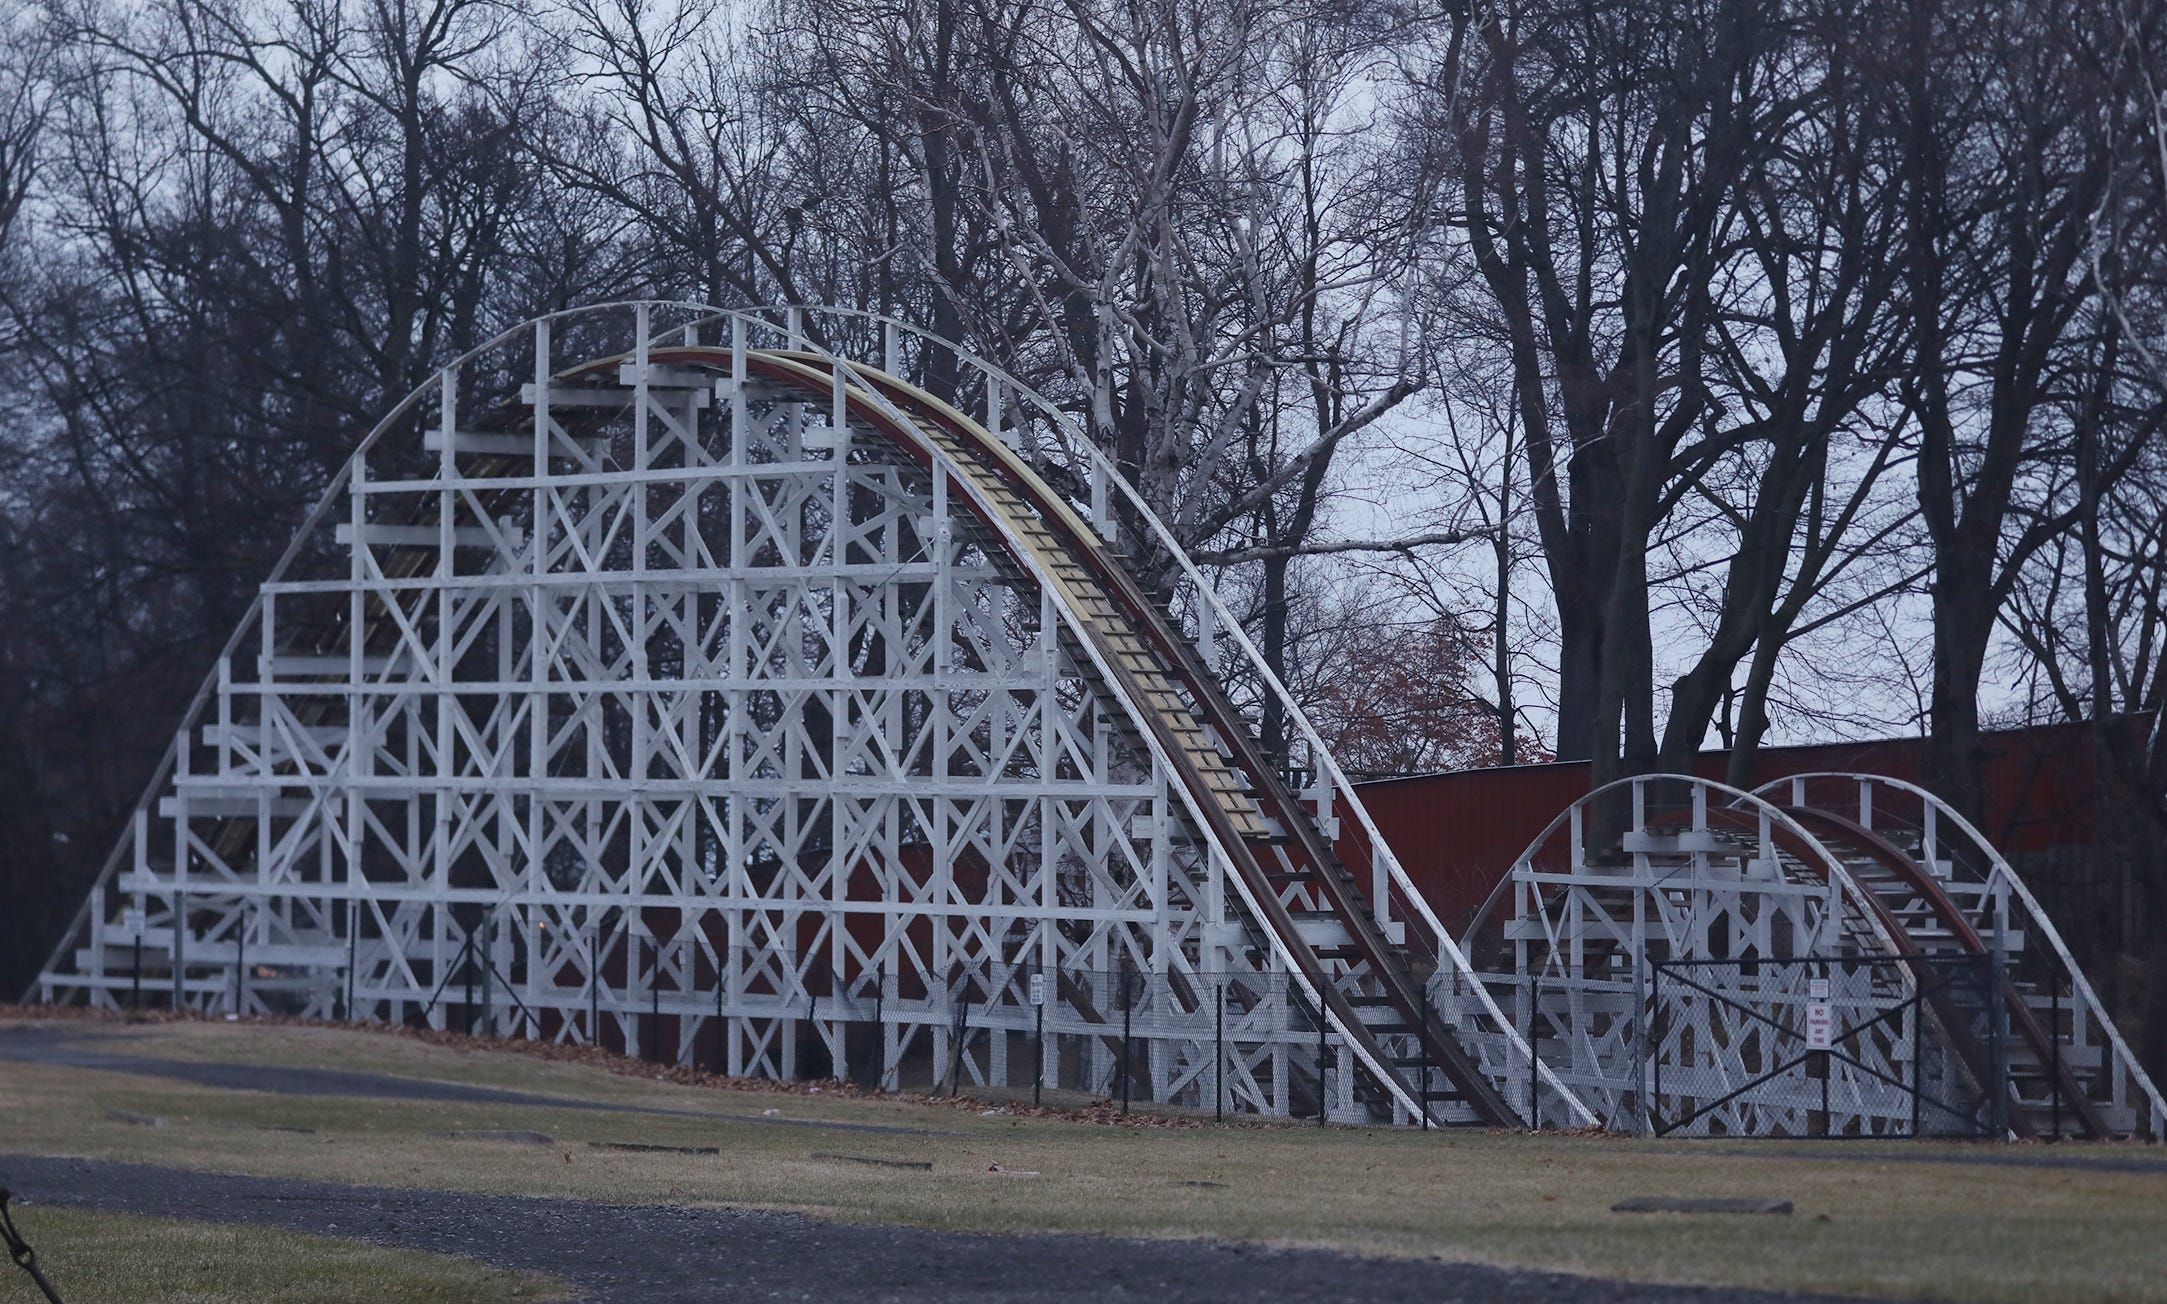 The Jack Rabbit opened in 1920 at Seabreeze Amusement Park.